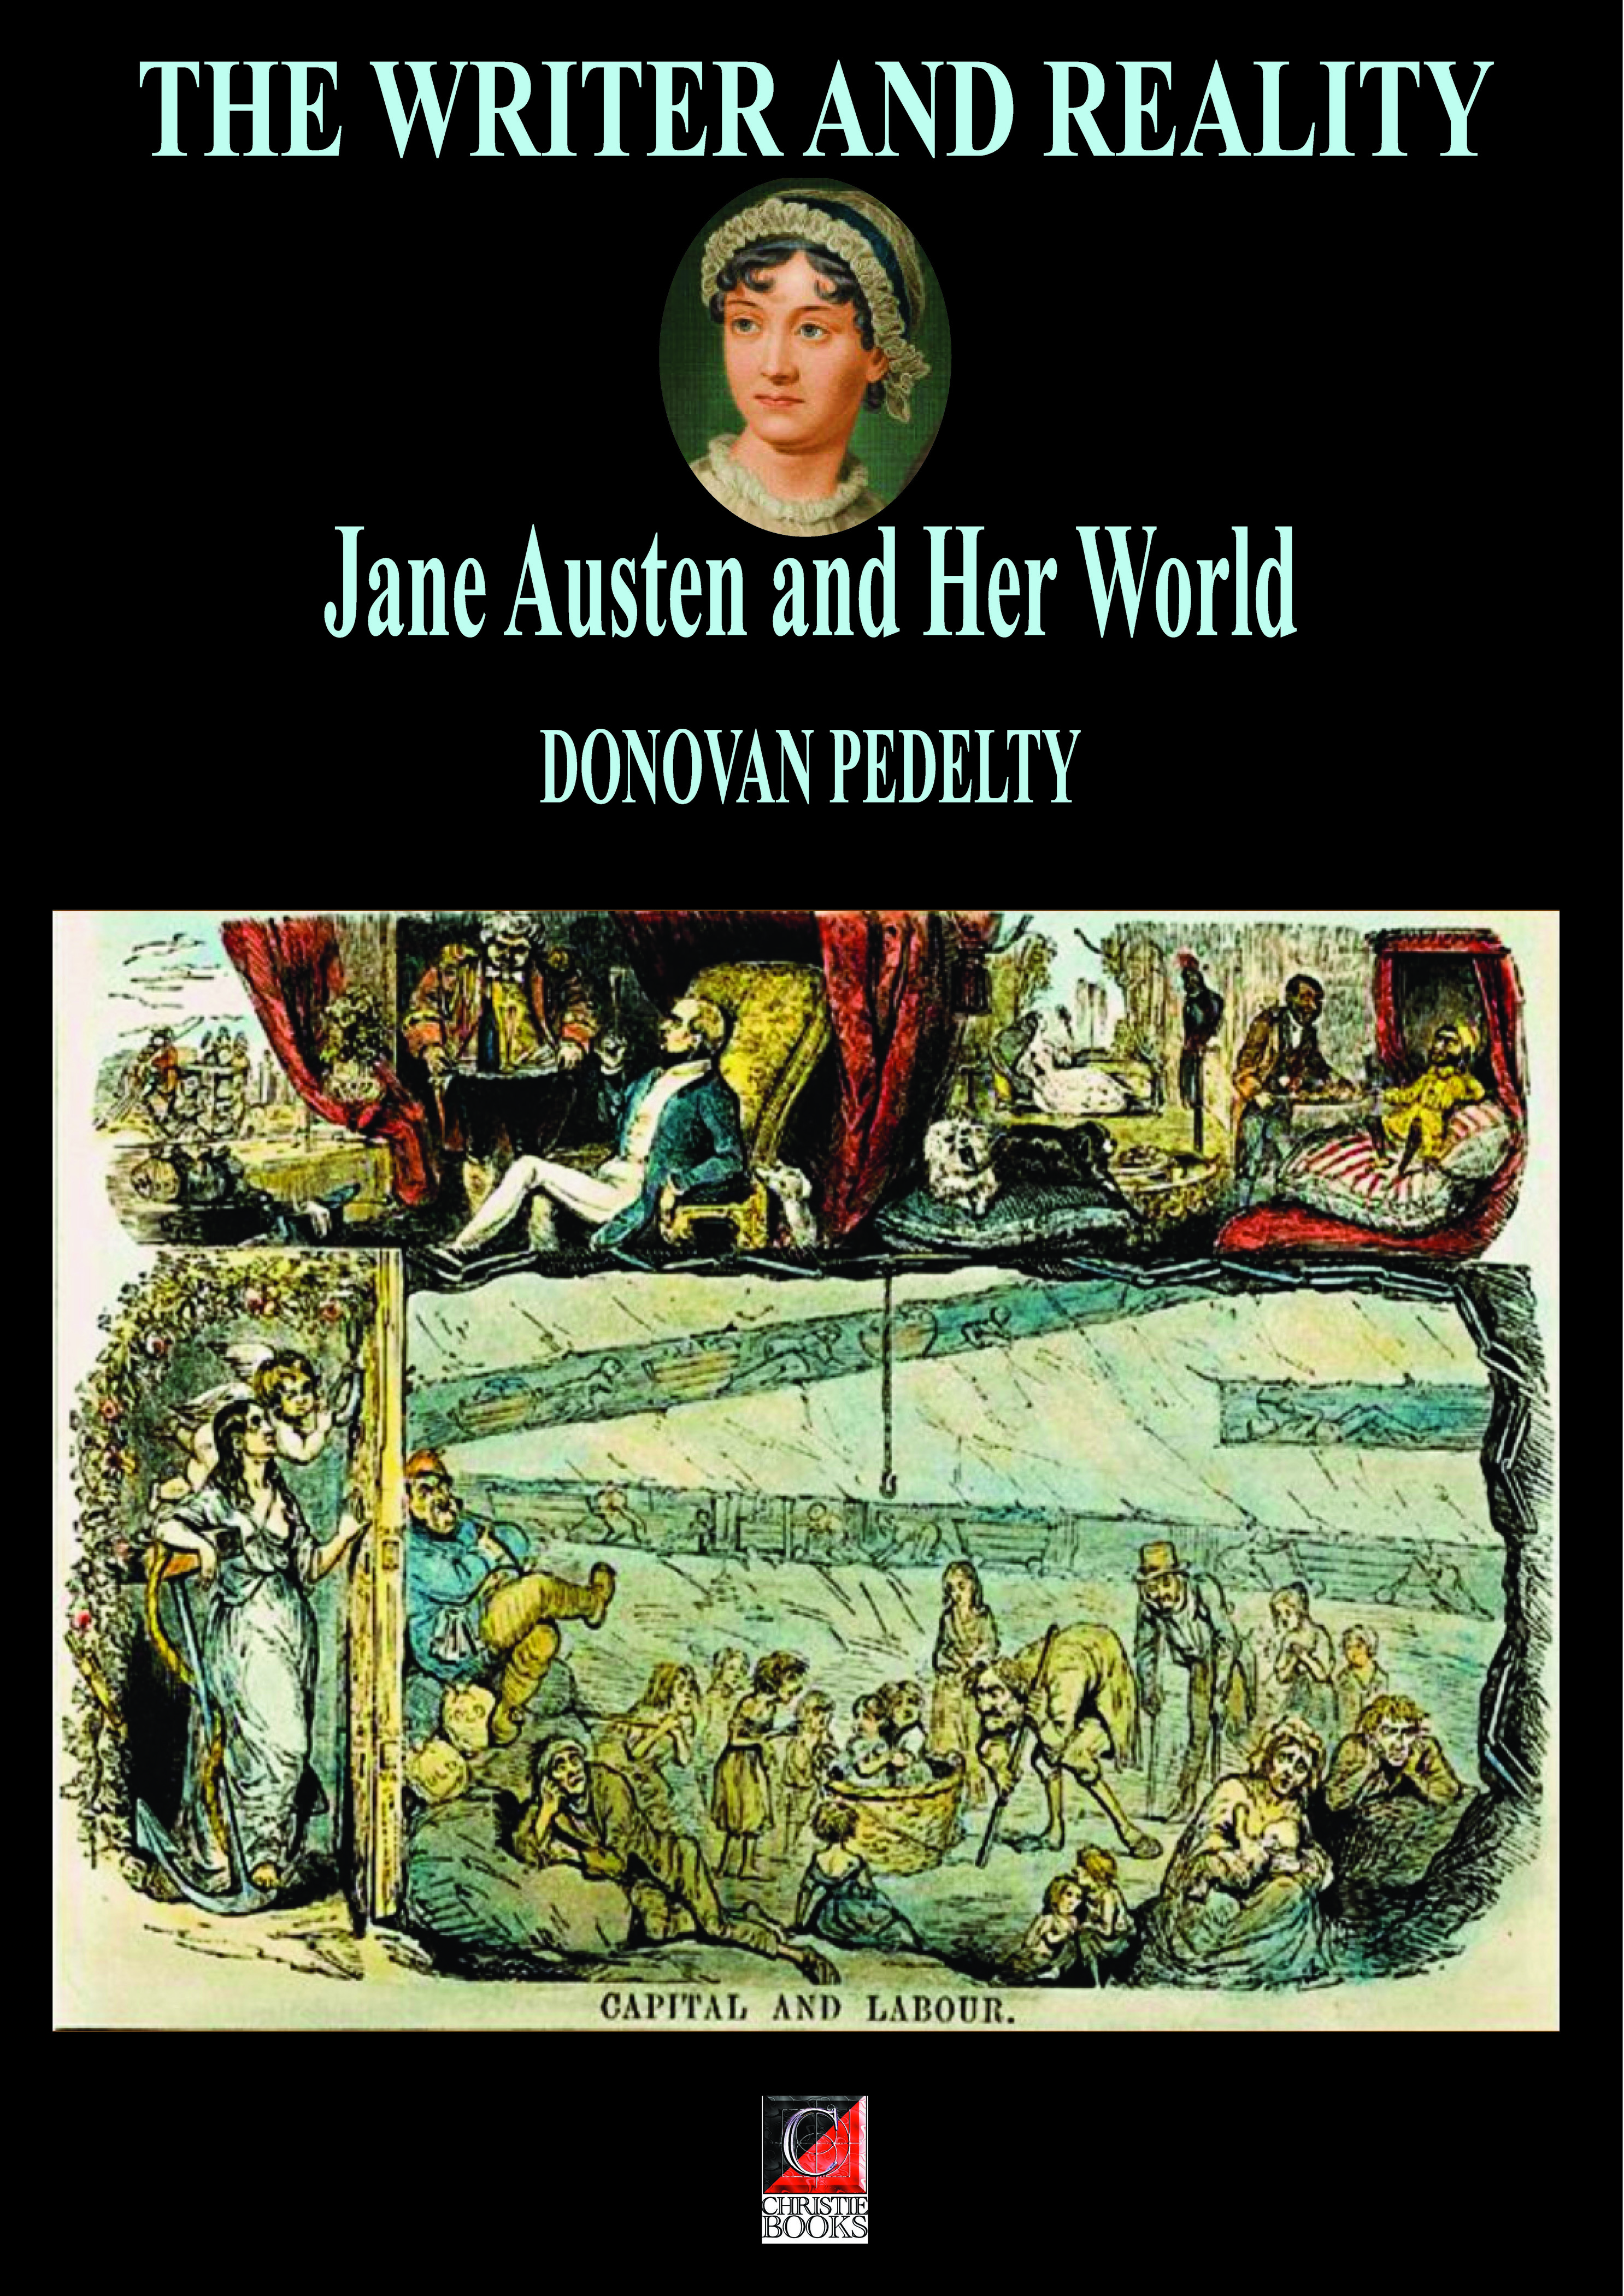 THE WRITER AND REALITY. Jane Austen and Her World